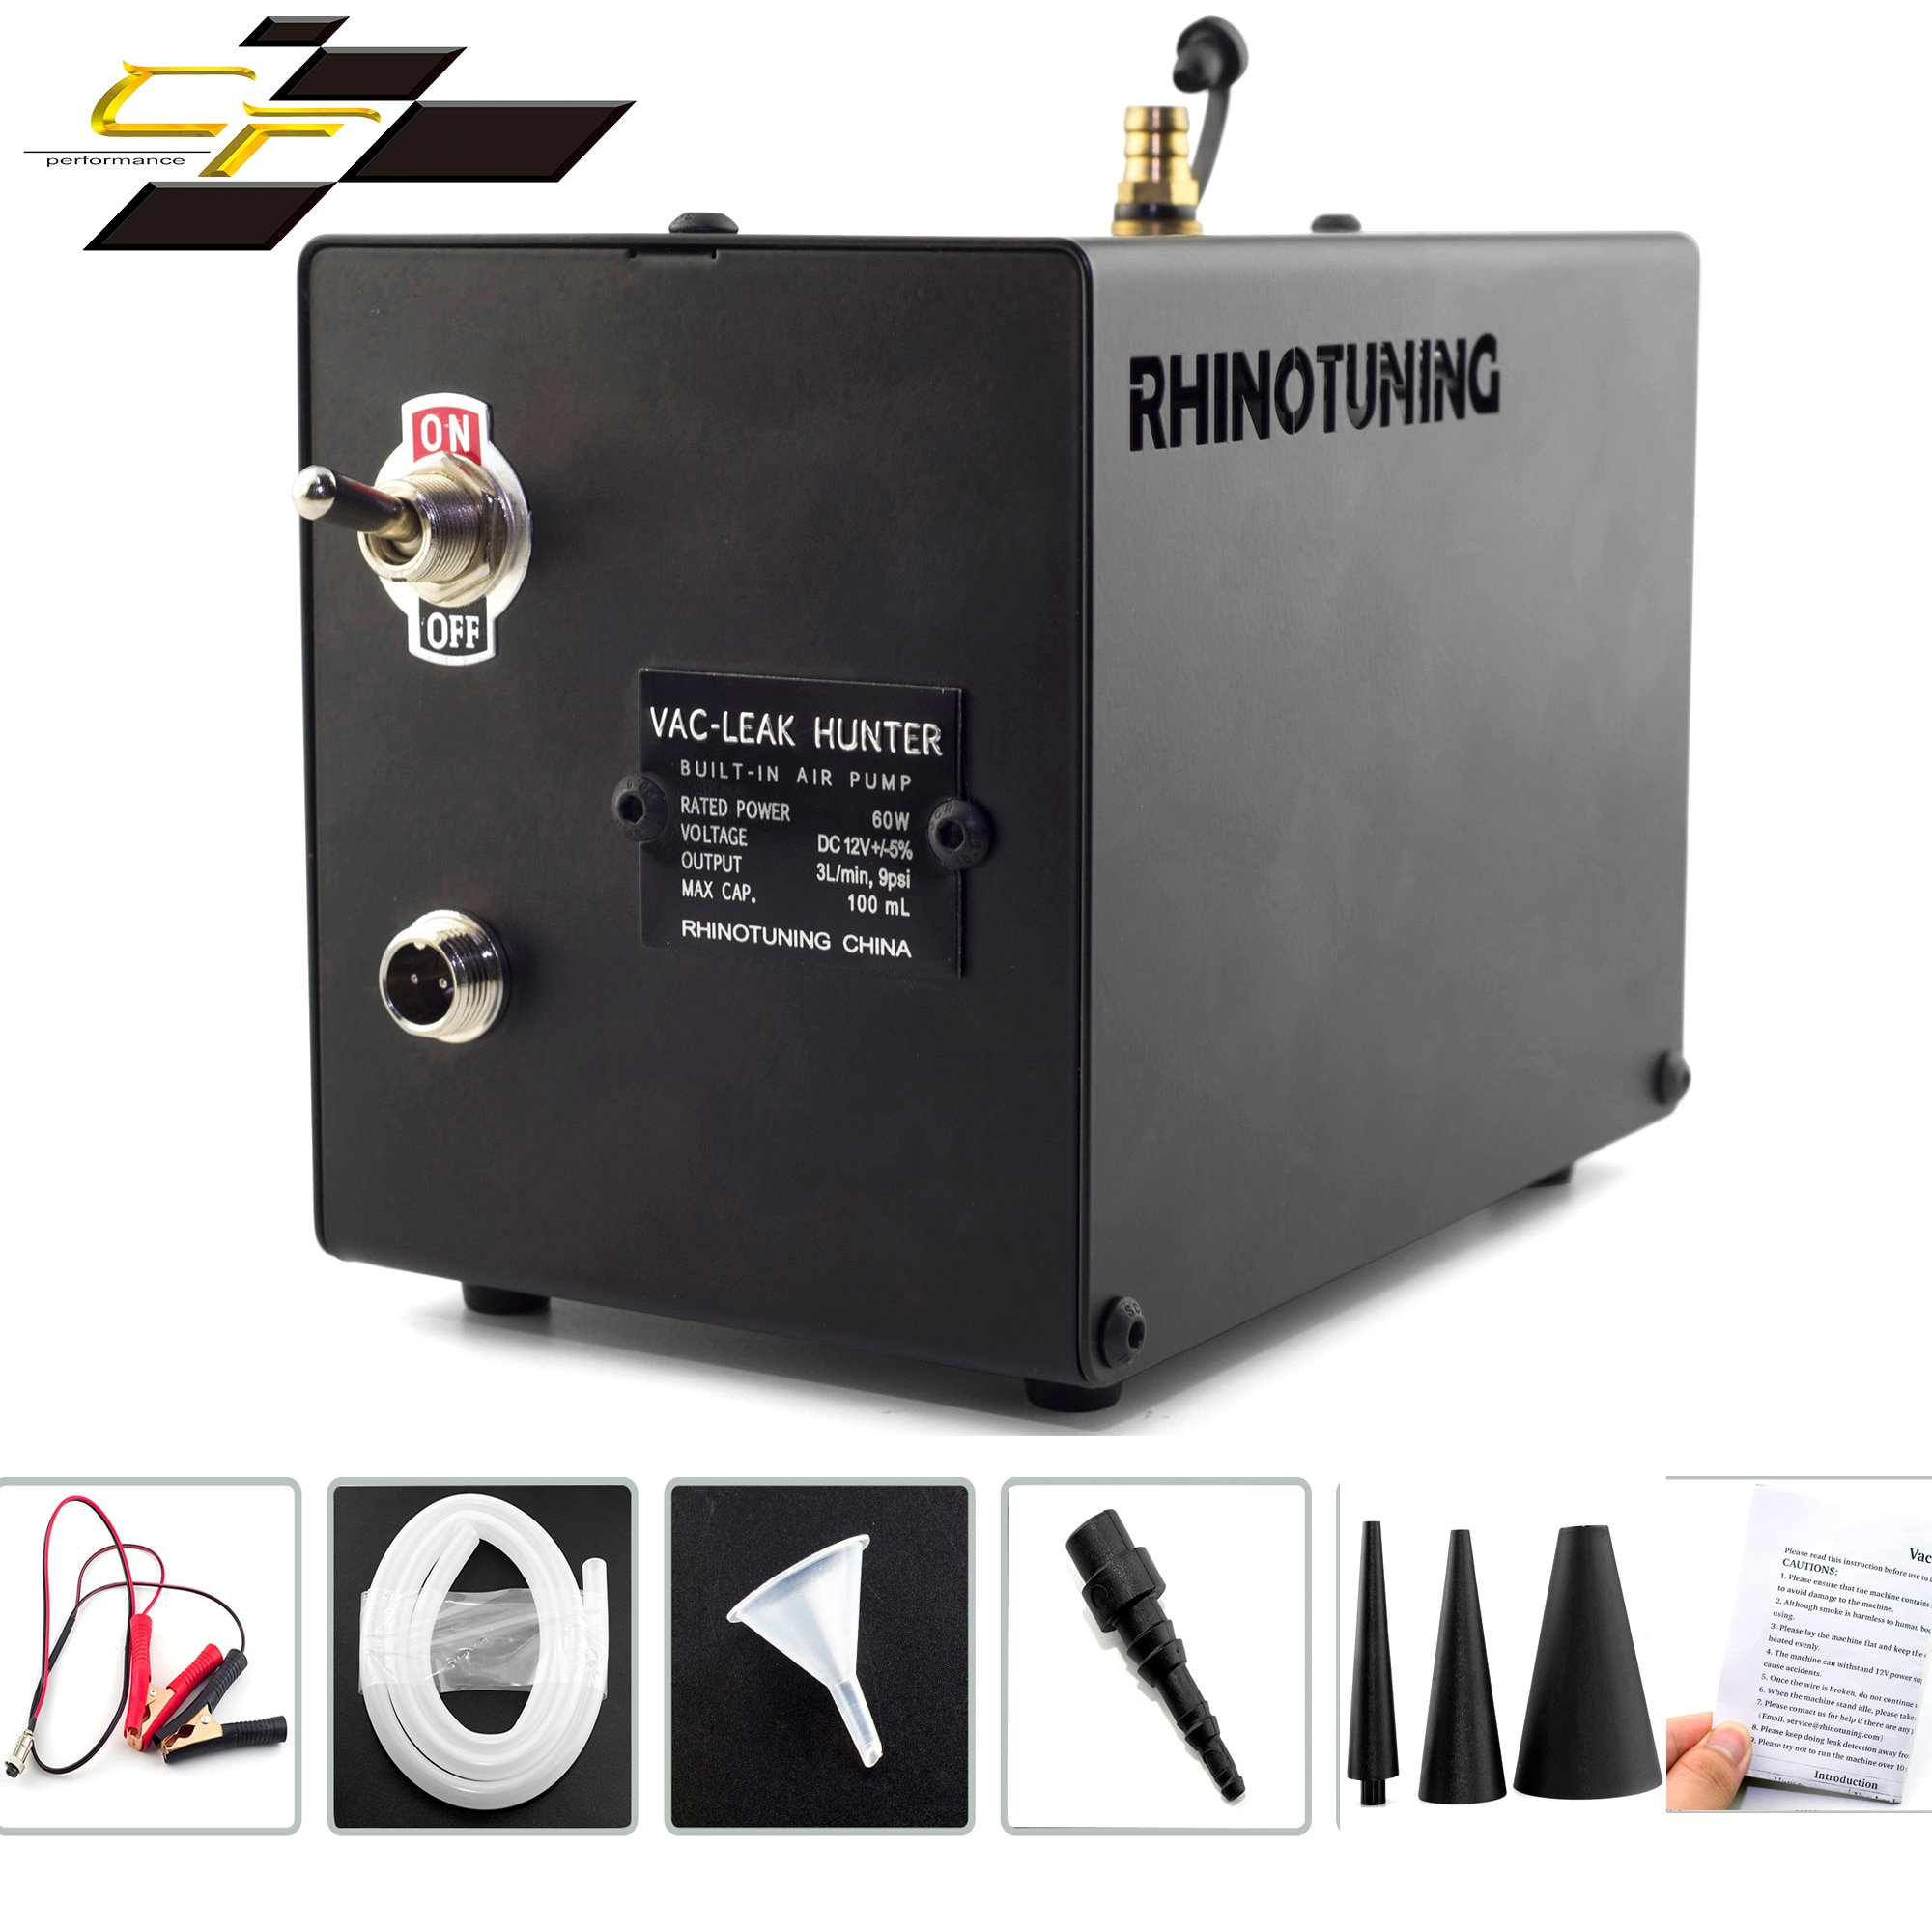 Nwe Smoke Machine Vac-LeakHunter LeaksTesting Tool And 4 Universal External Connection Interfaces For All Vehicles Vacuum Diag